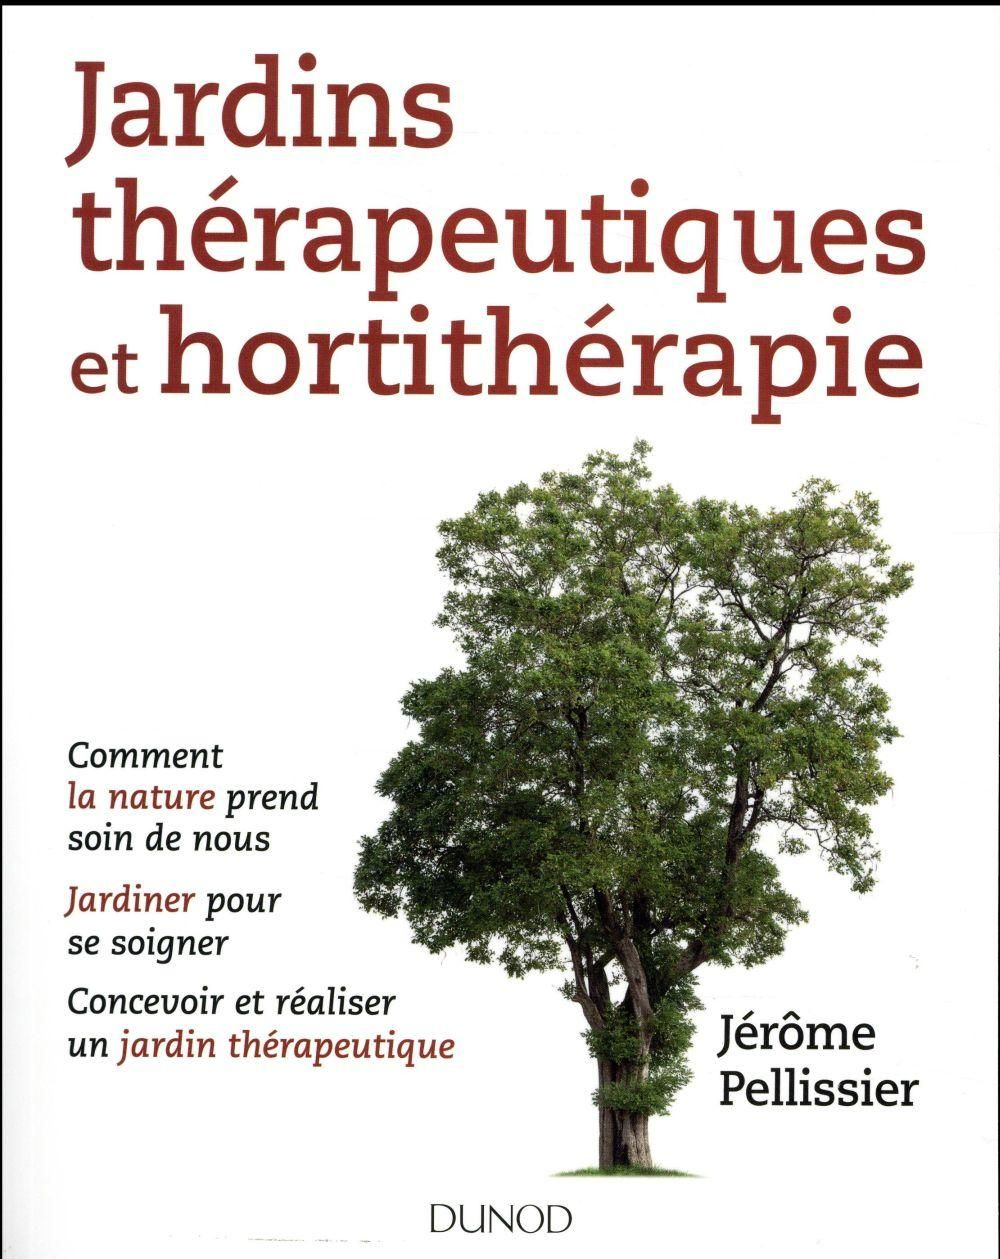 Pin Op Hortitherapie Jardins Therapeutiques